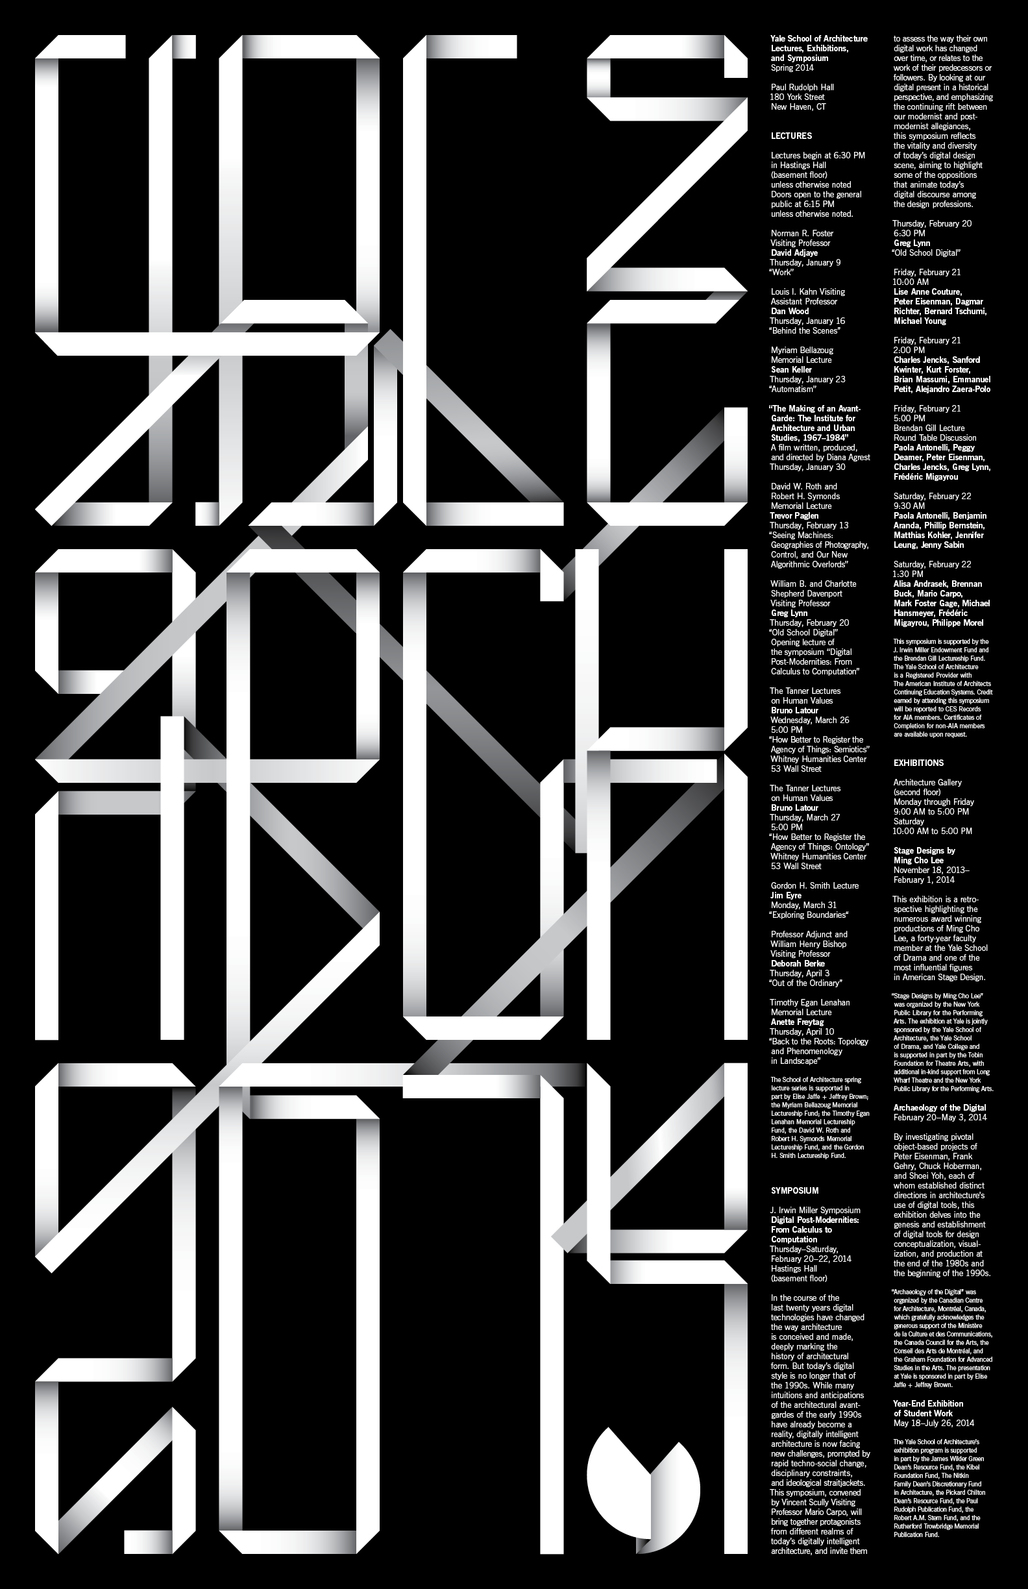 Spring 14 events at Yale School of Architecture. Poster designed by Pentagram: Michael Bierut and Jessica Svendsen.